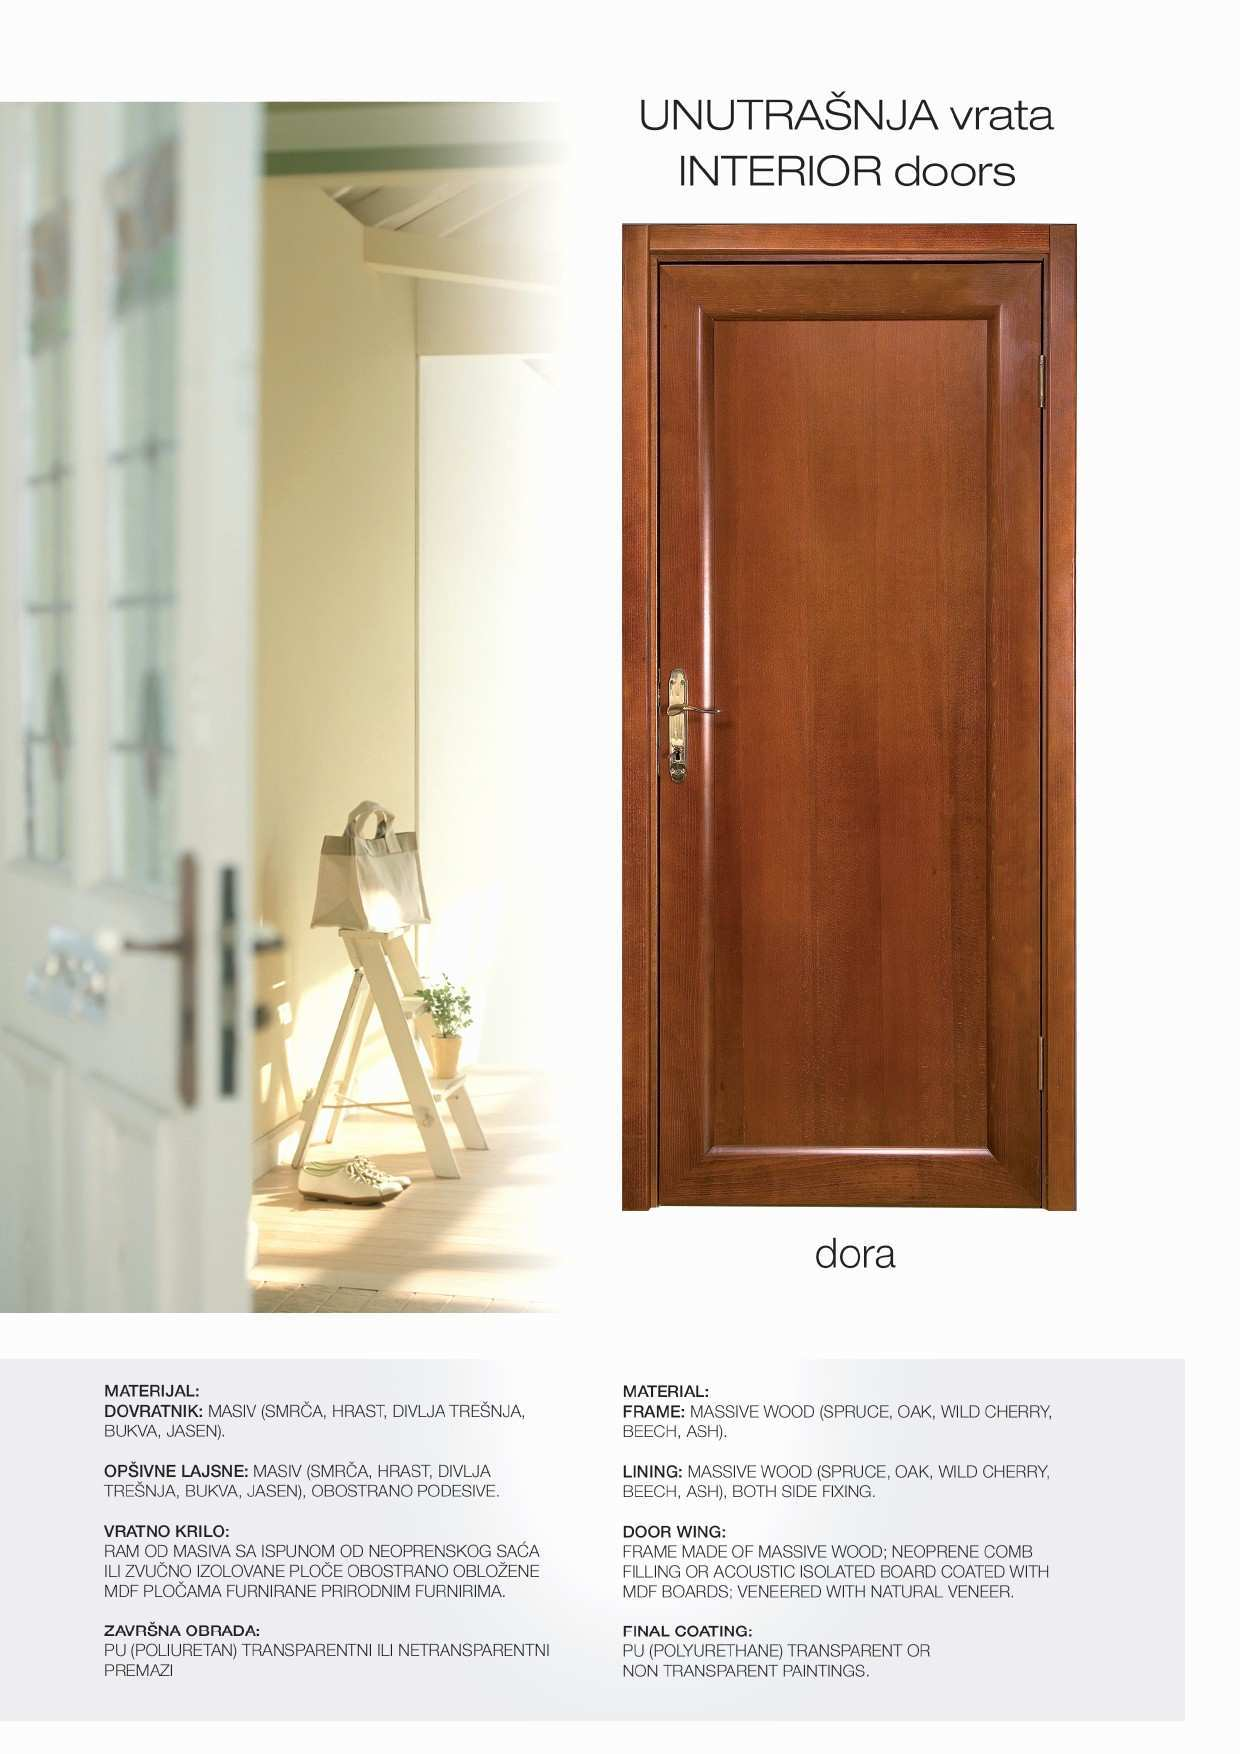 50 Best Interior Wood Doors for Sale 50 s